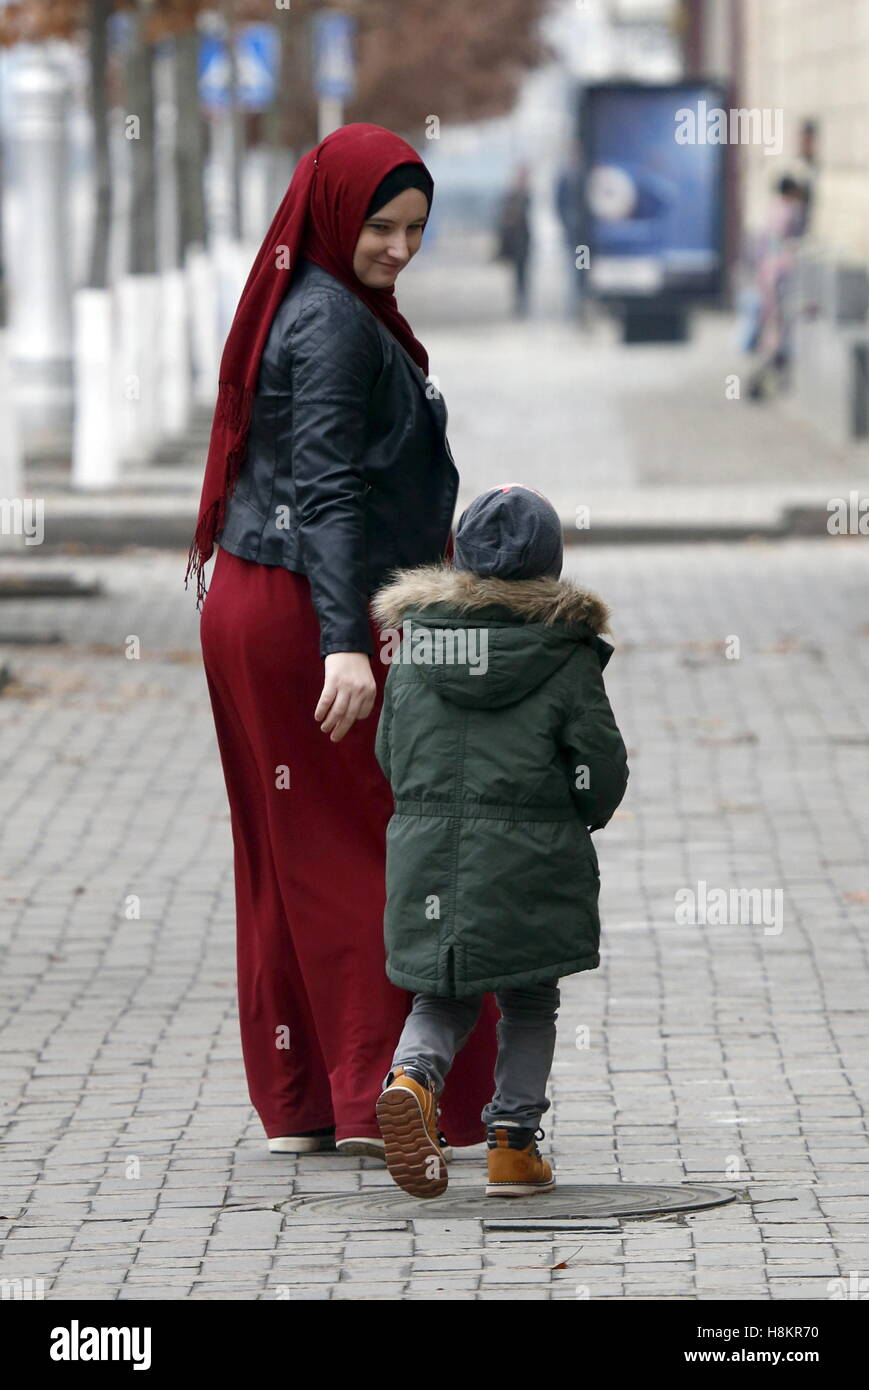 GROZNY, RUSSIA - NOVEMBER 13, 2016: A woman with son, wearing hijab [Muslim women's traditional headwear]. Valery - Stock Image